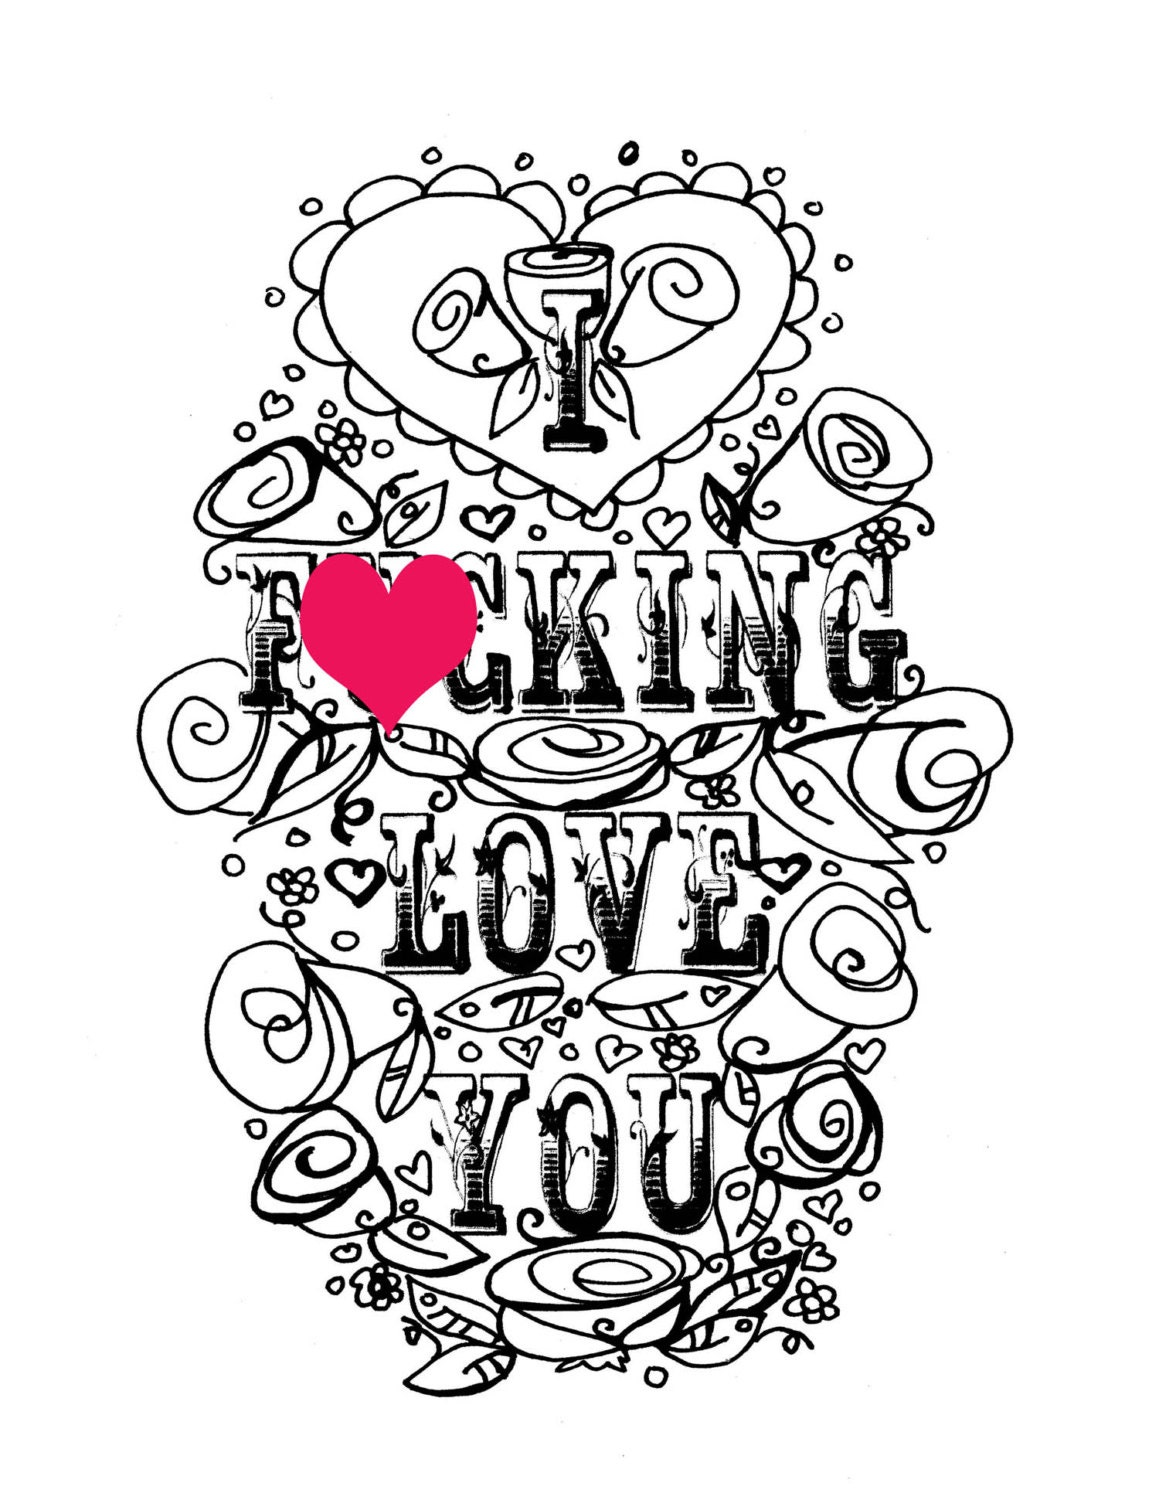 I Love You Coloring Pages Pdf : Adult coloring page valentine s day curse swear sheet